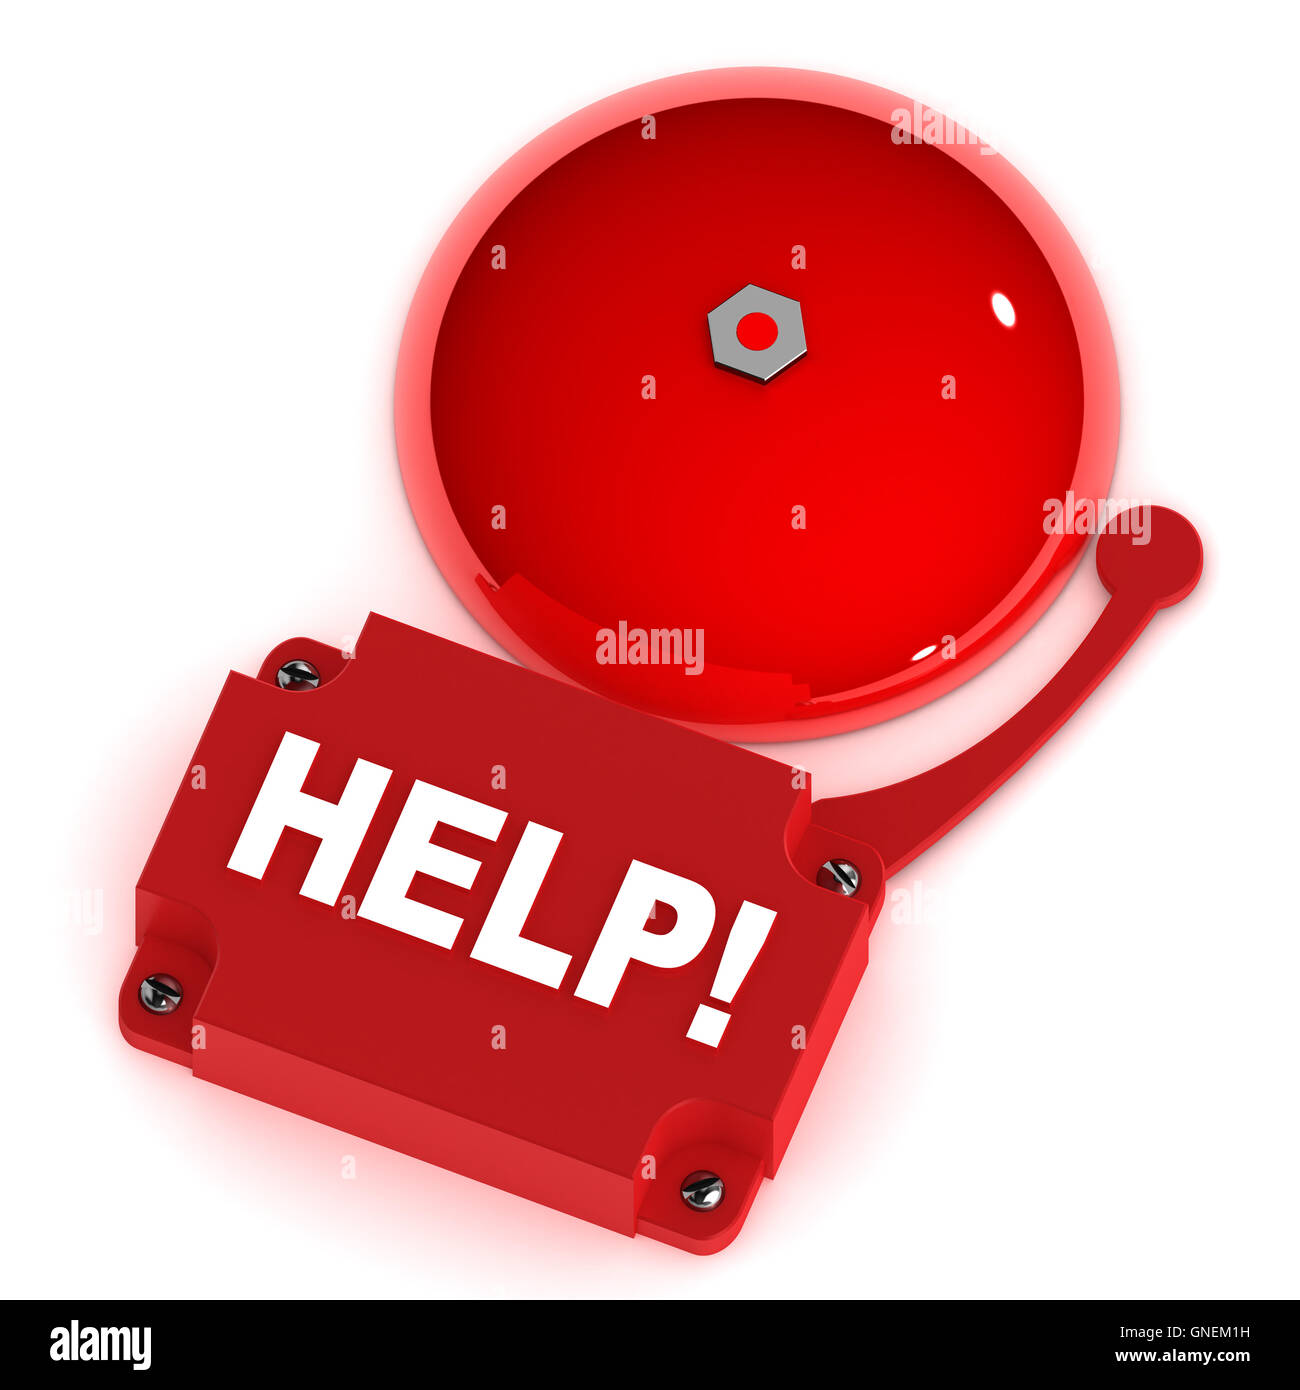 Help Alarm Bell - Stock Image